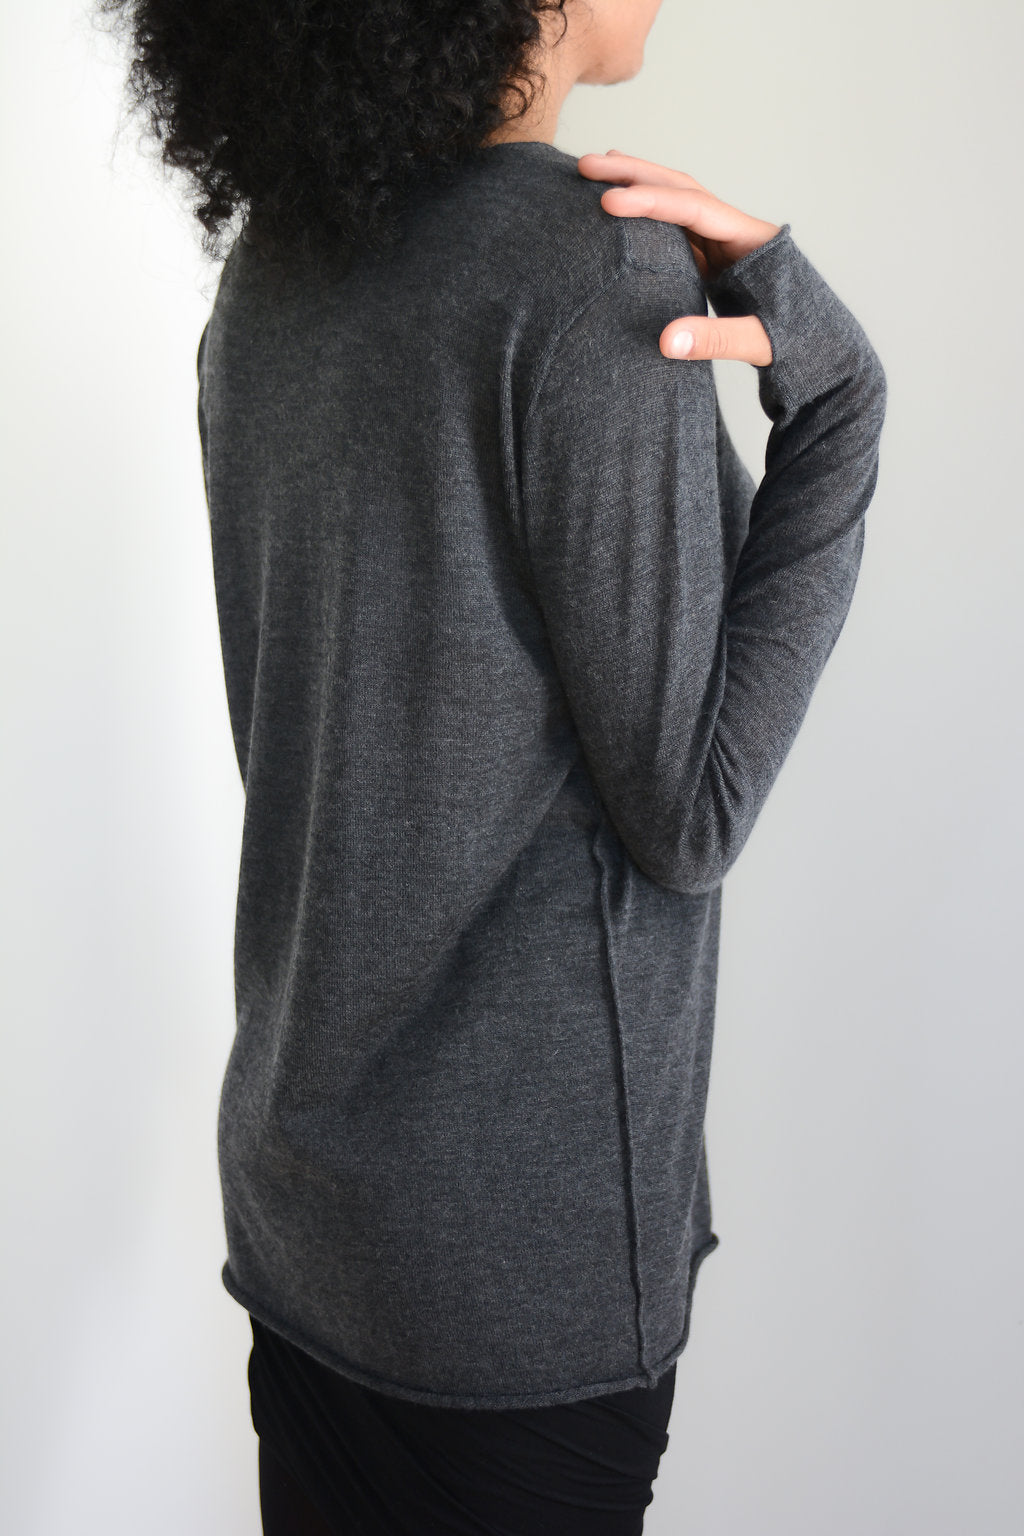 Charcoal Grey silk cashmere sweater